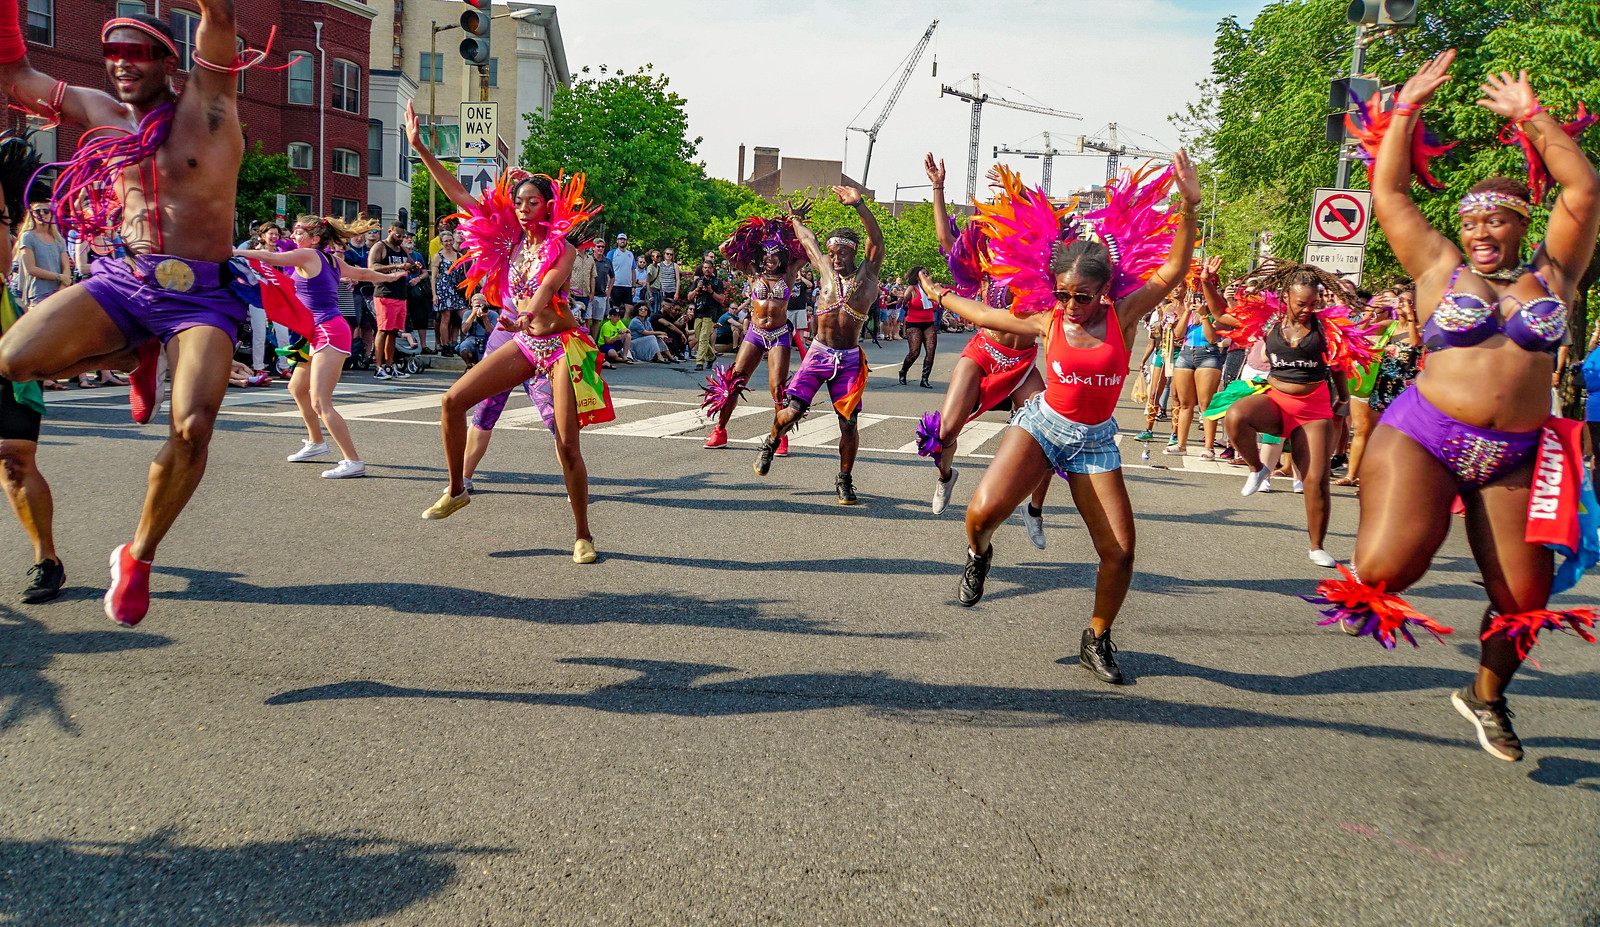 2018.05.12 DC Funk Parade, Washington, DC USA 02259